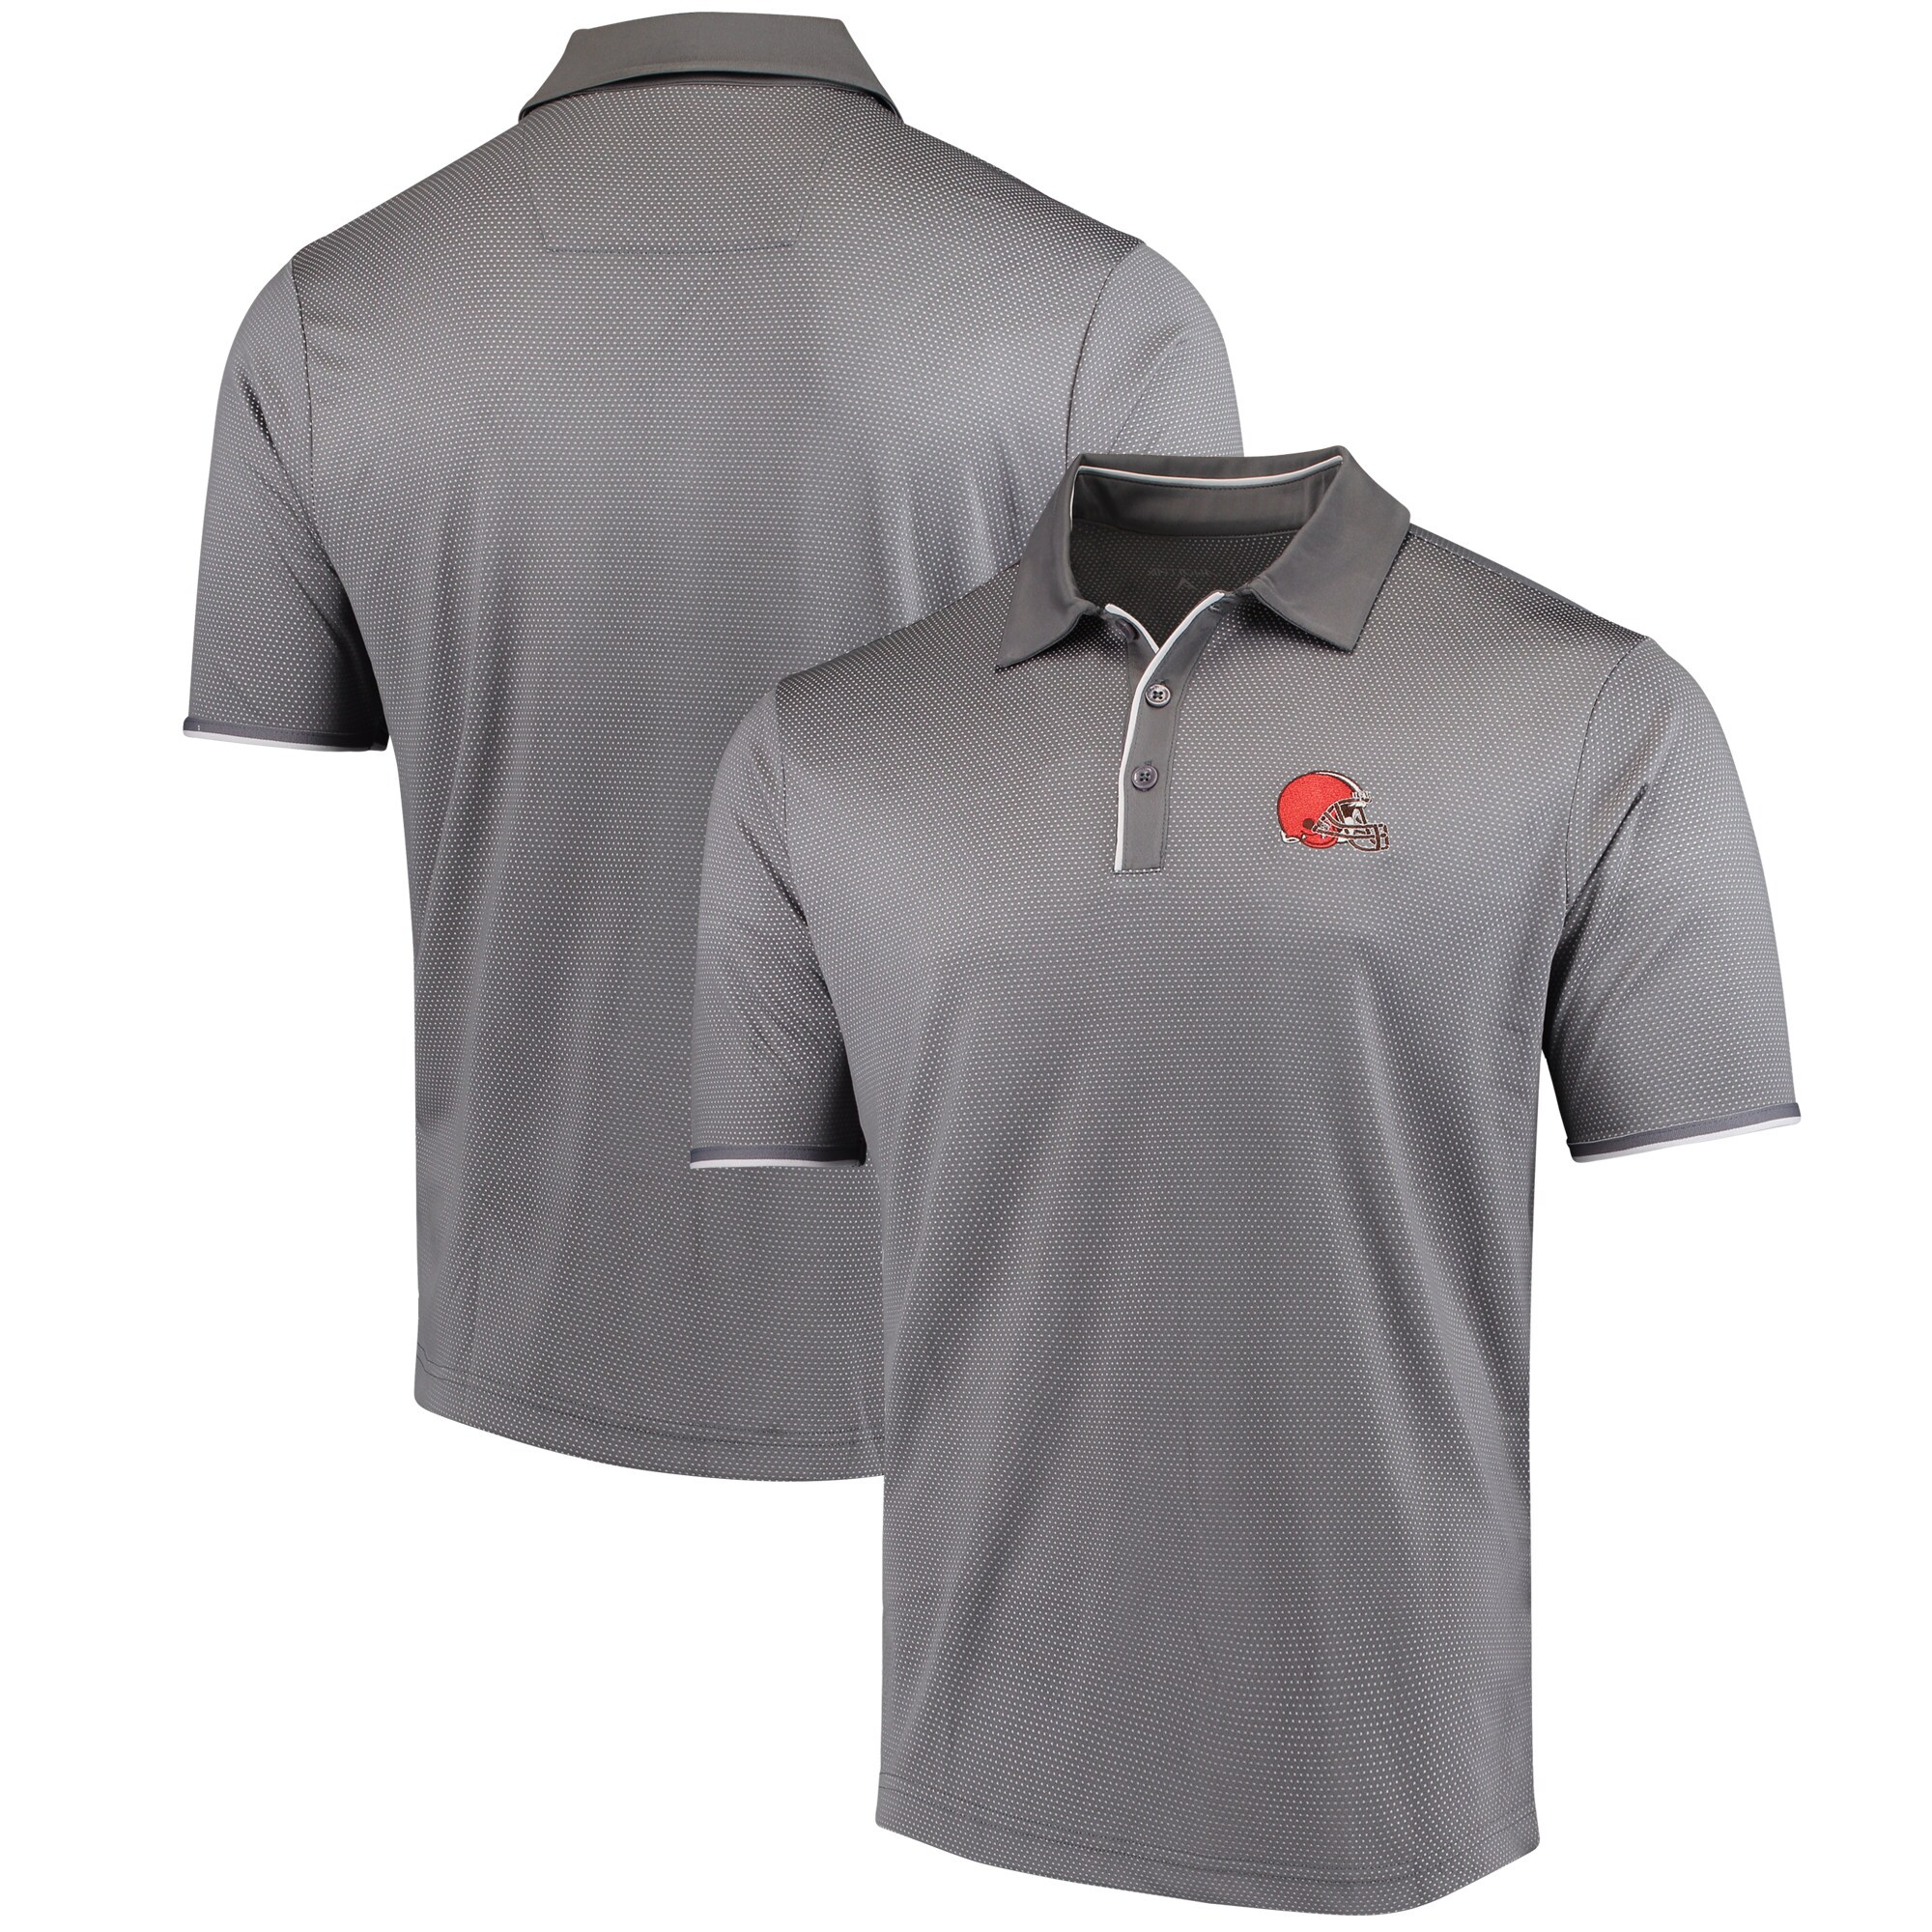 Cleveland Browns Antigua Draft Polo - Steel/White